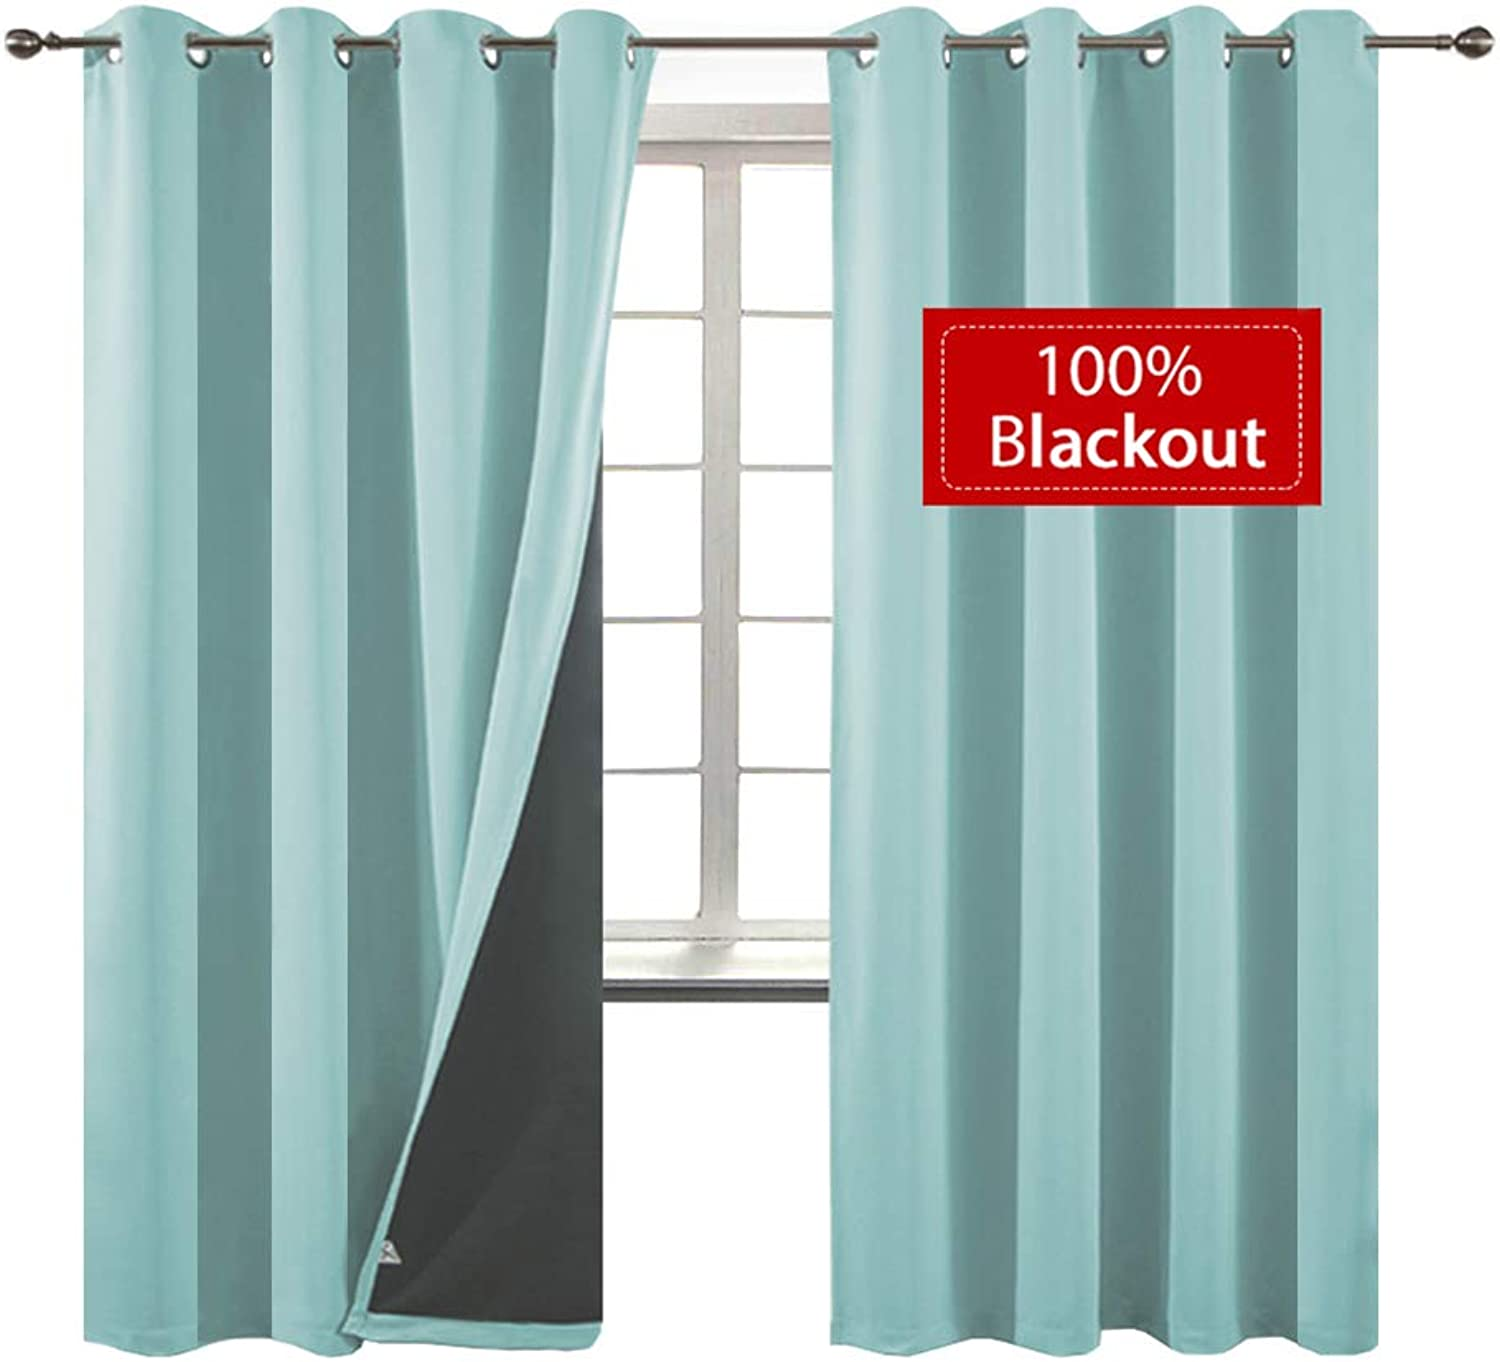 Yakamok 100% Blackout Lined Pair Curtains, Window Treatment Thermal Insulated Soundproof Drapes for Bedroom(52Wx84L, Aqua, 2 Panels)